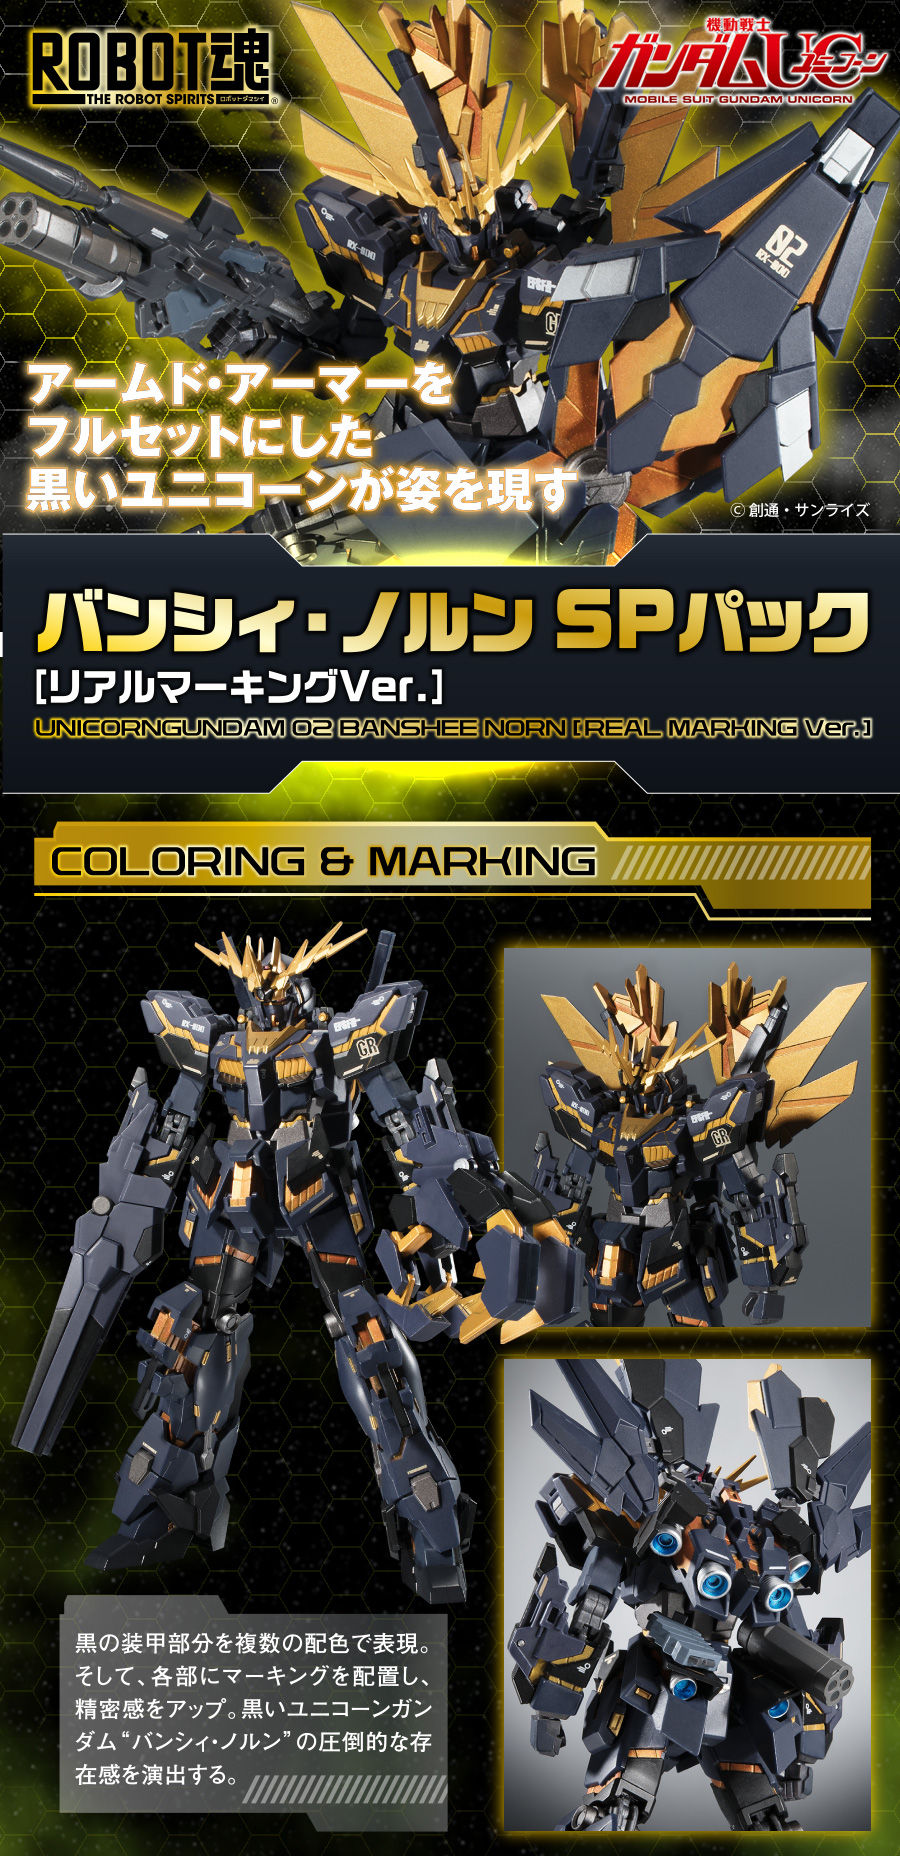 ROBOT SPIRIT SIDE MS BANSHEE NORN SP PACK [REAL MARKING VER.]